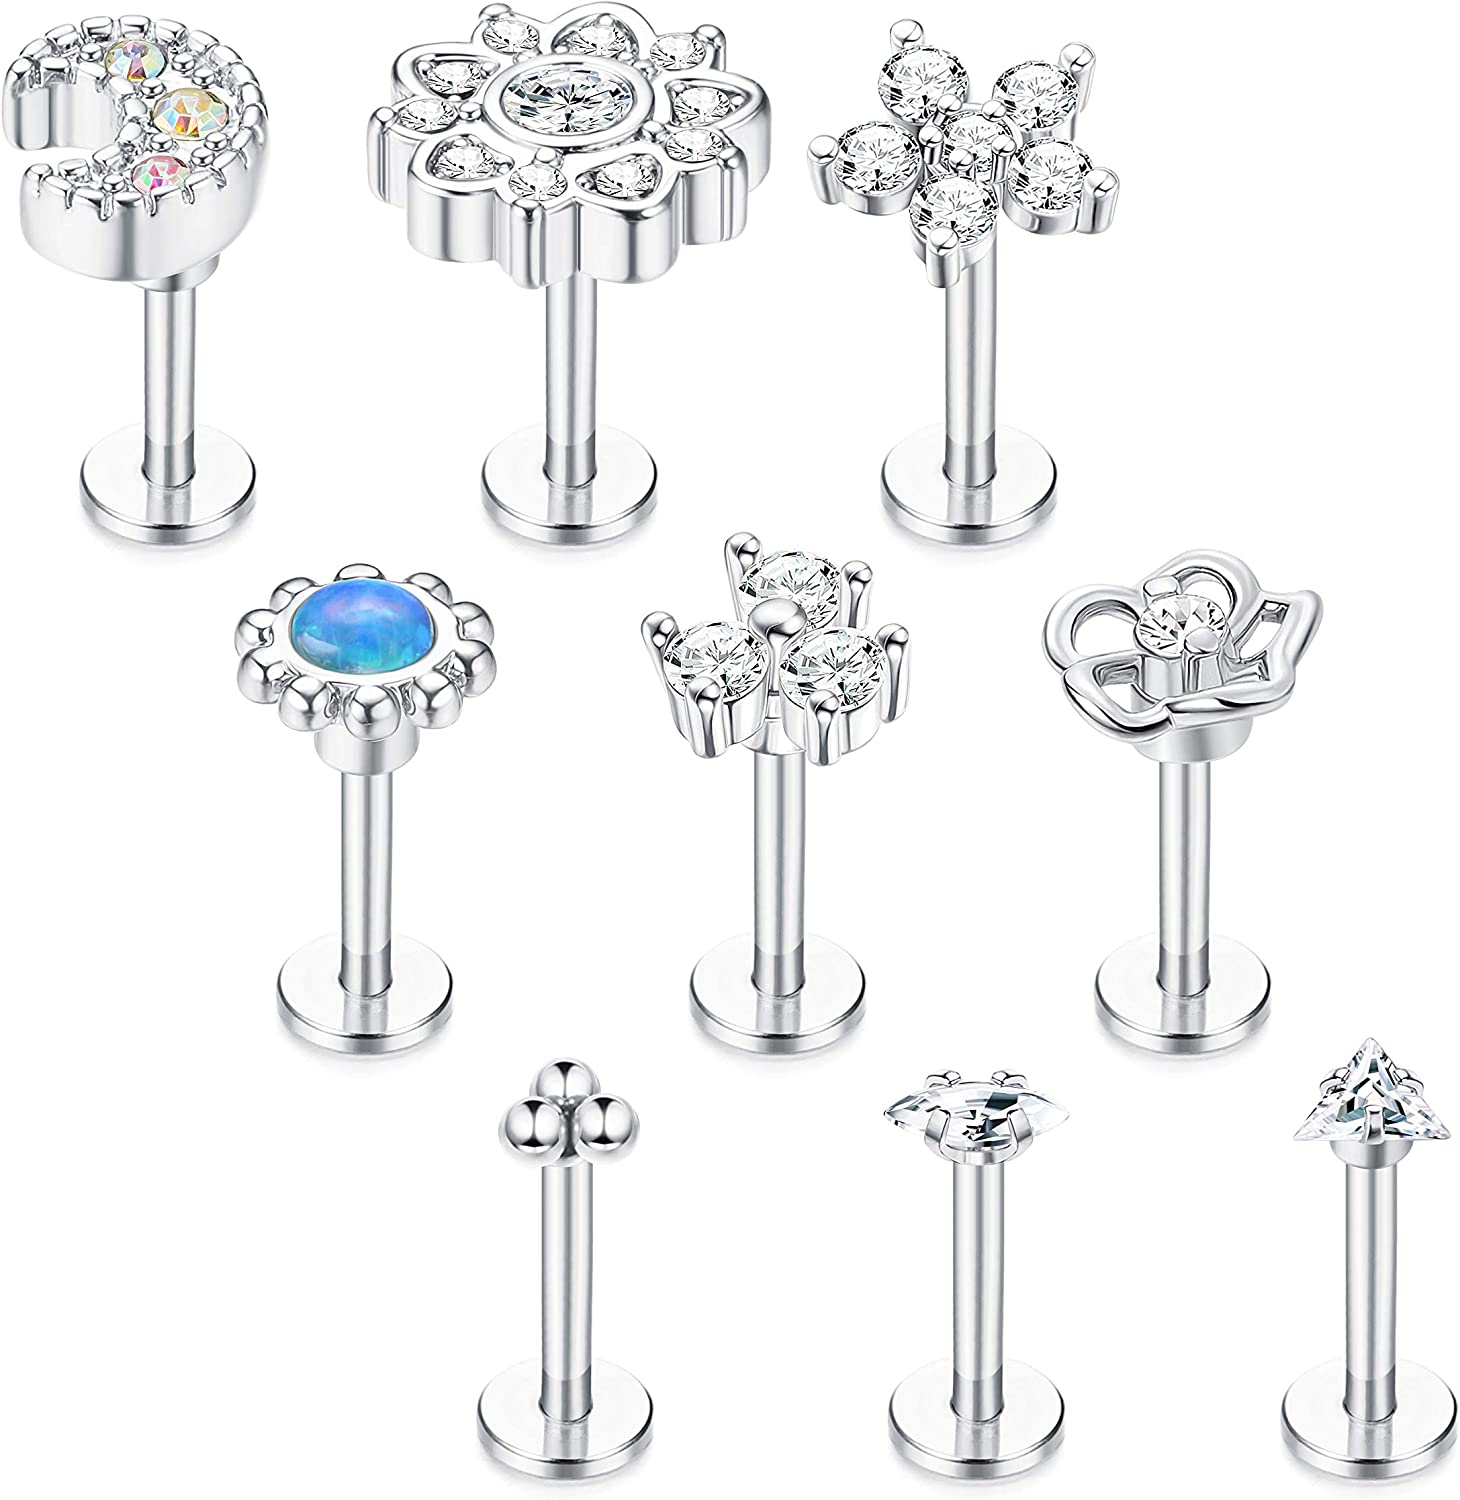 Drperfect 9 Pcs 16G Stainless Steel Ranking TOP2 for Tragus Earrings Women 2021 Me